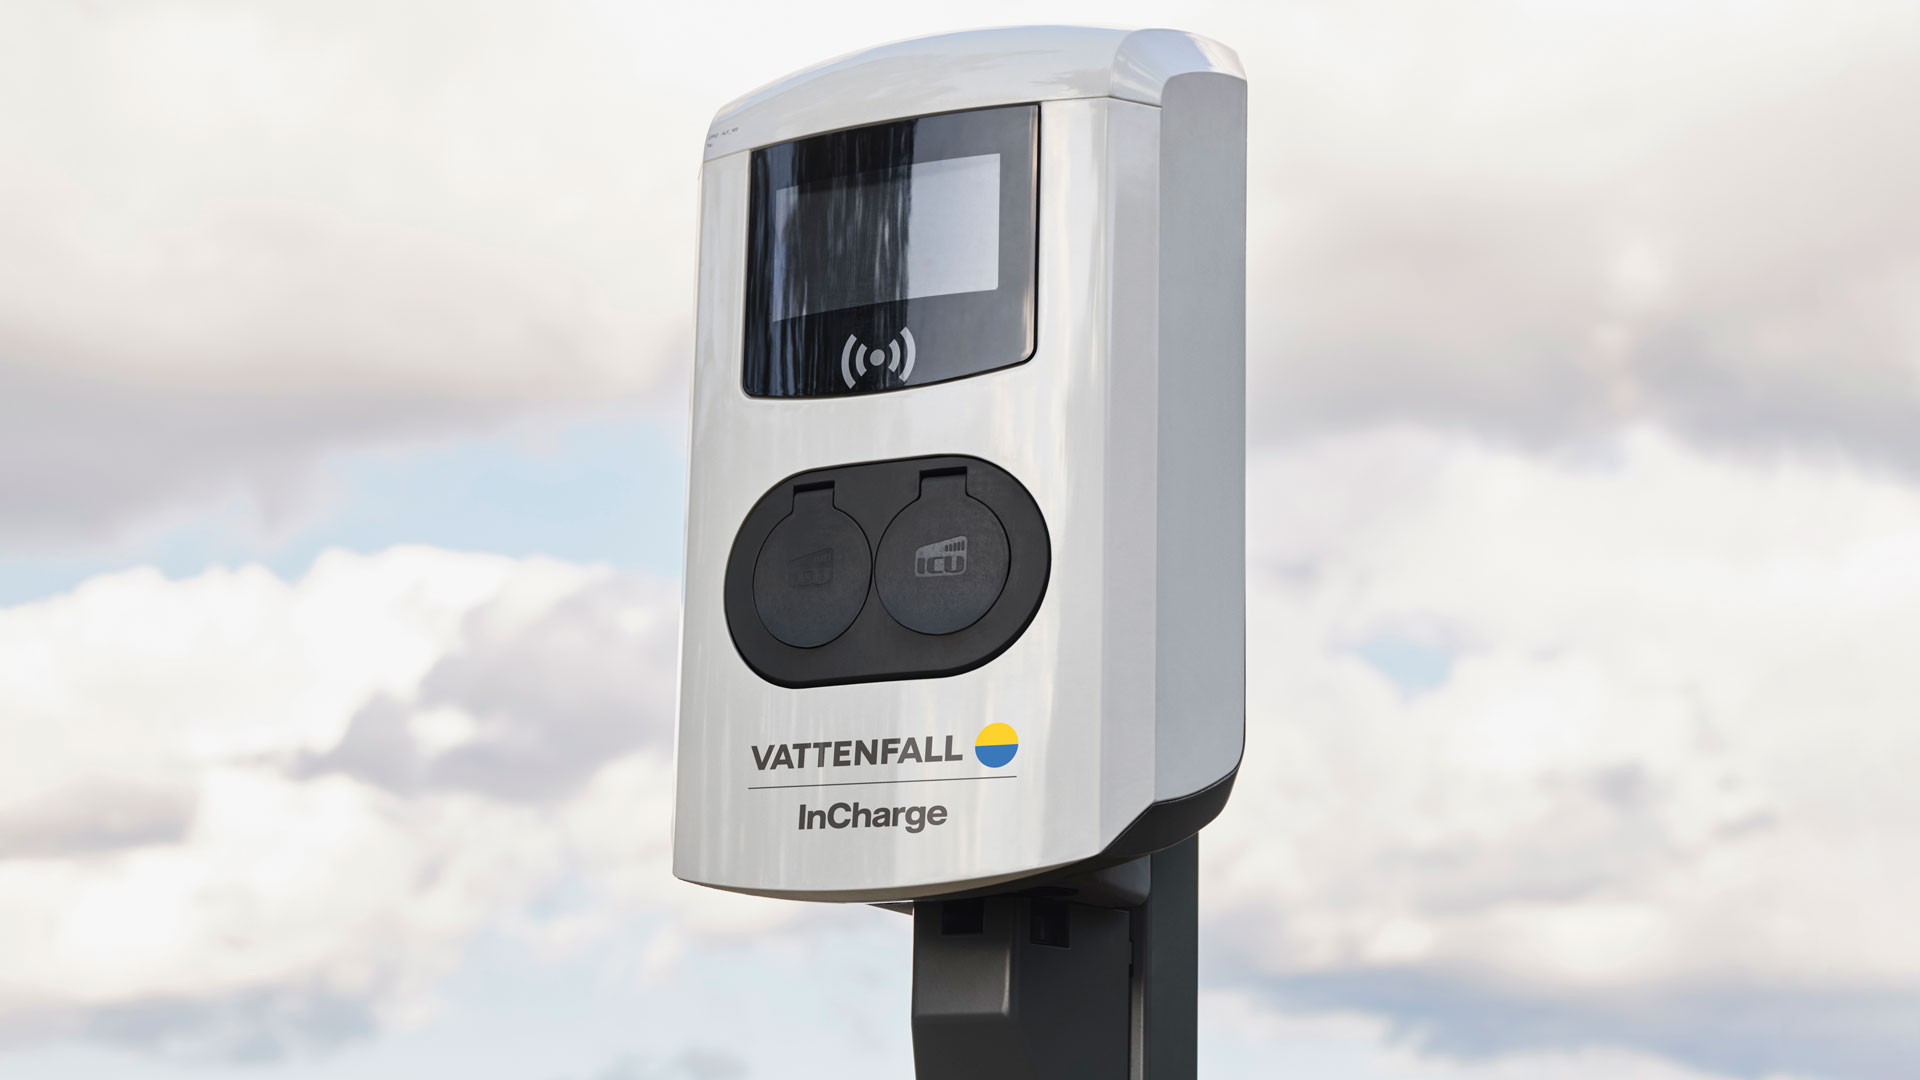 vattenfall_incharge_charger_nl_cropped-002-1920.jpg